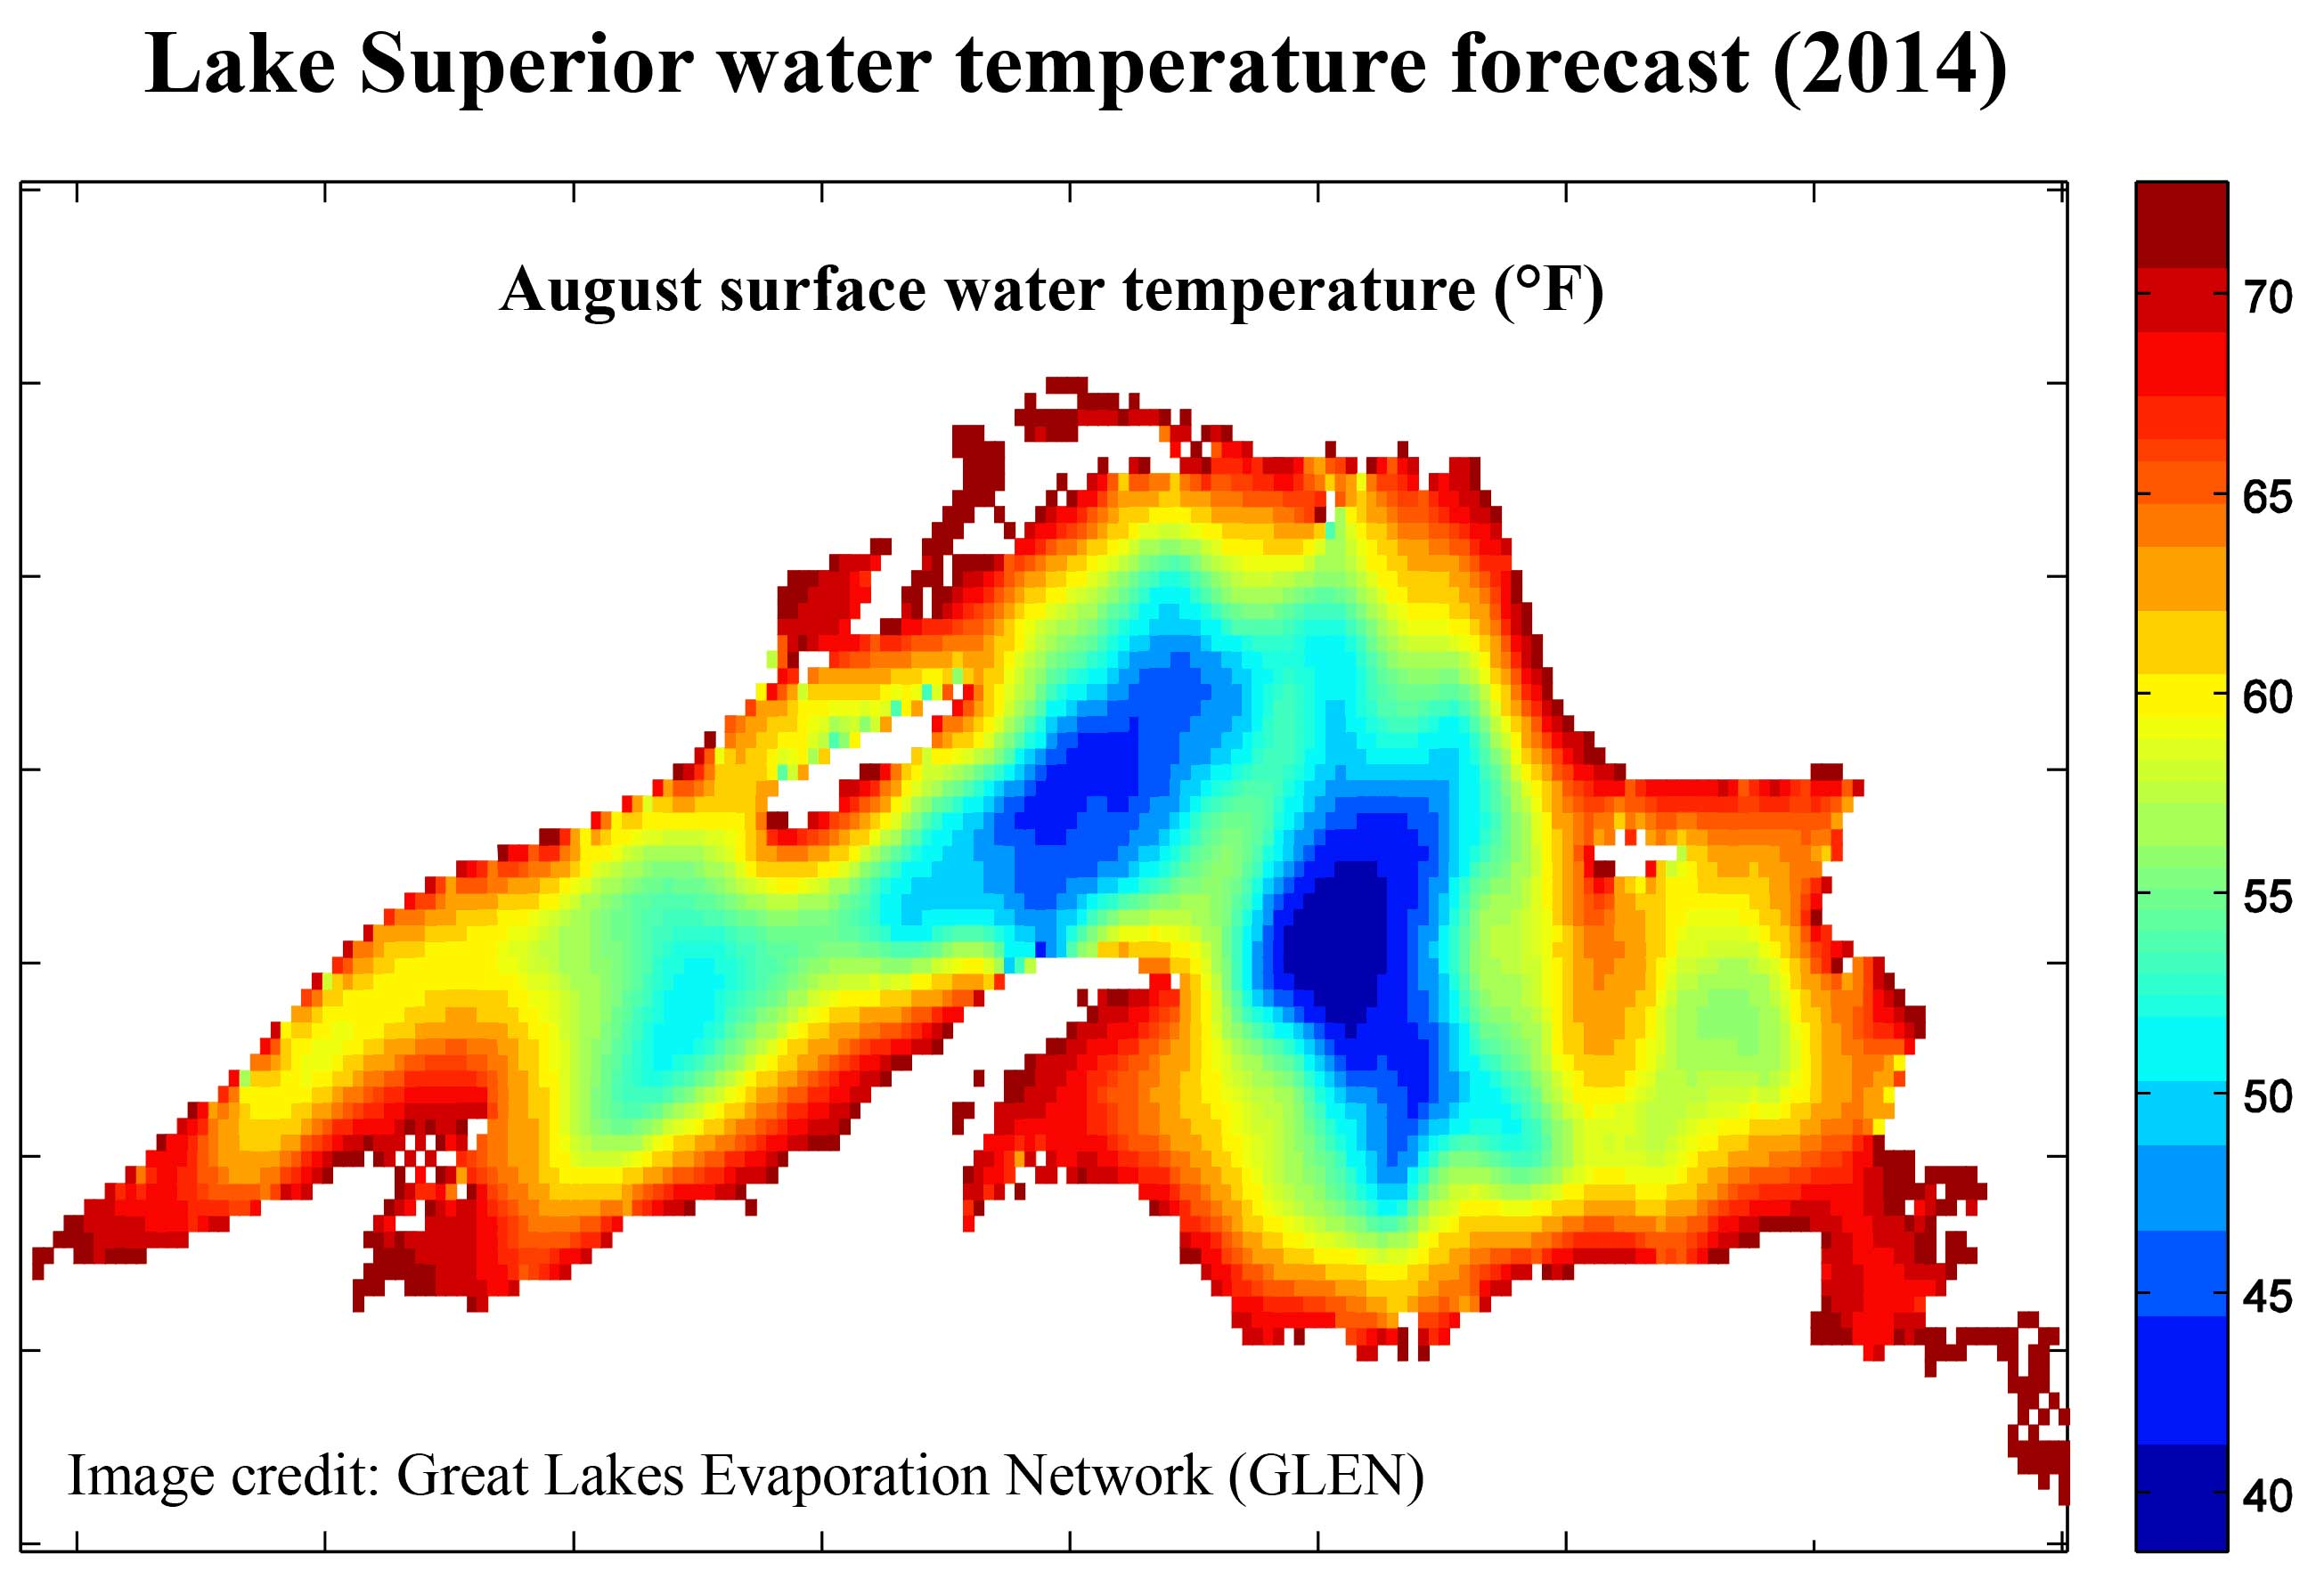 Lake Superior water temperature forecast (2014). August surface water temperature (°F). Image credit: Great Lakes Evaporation Network (GLEN)